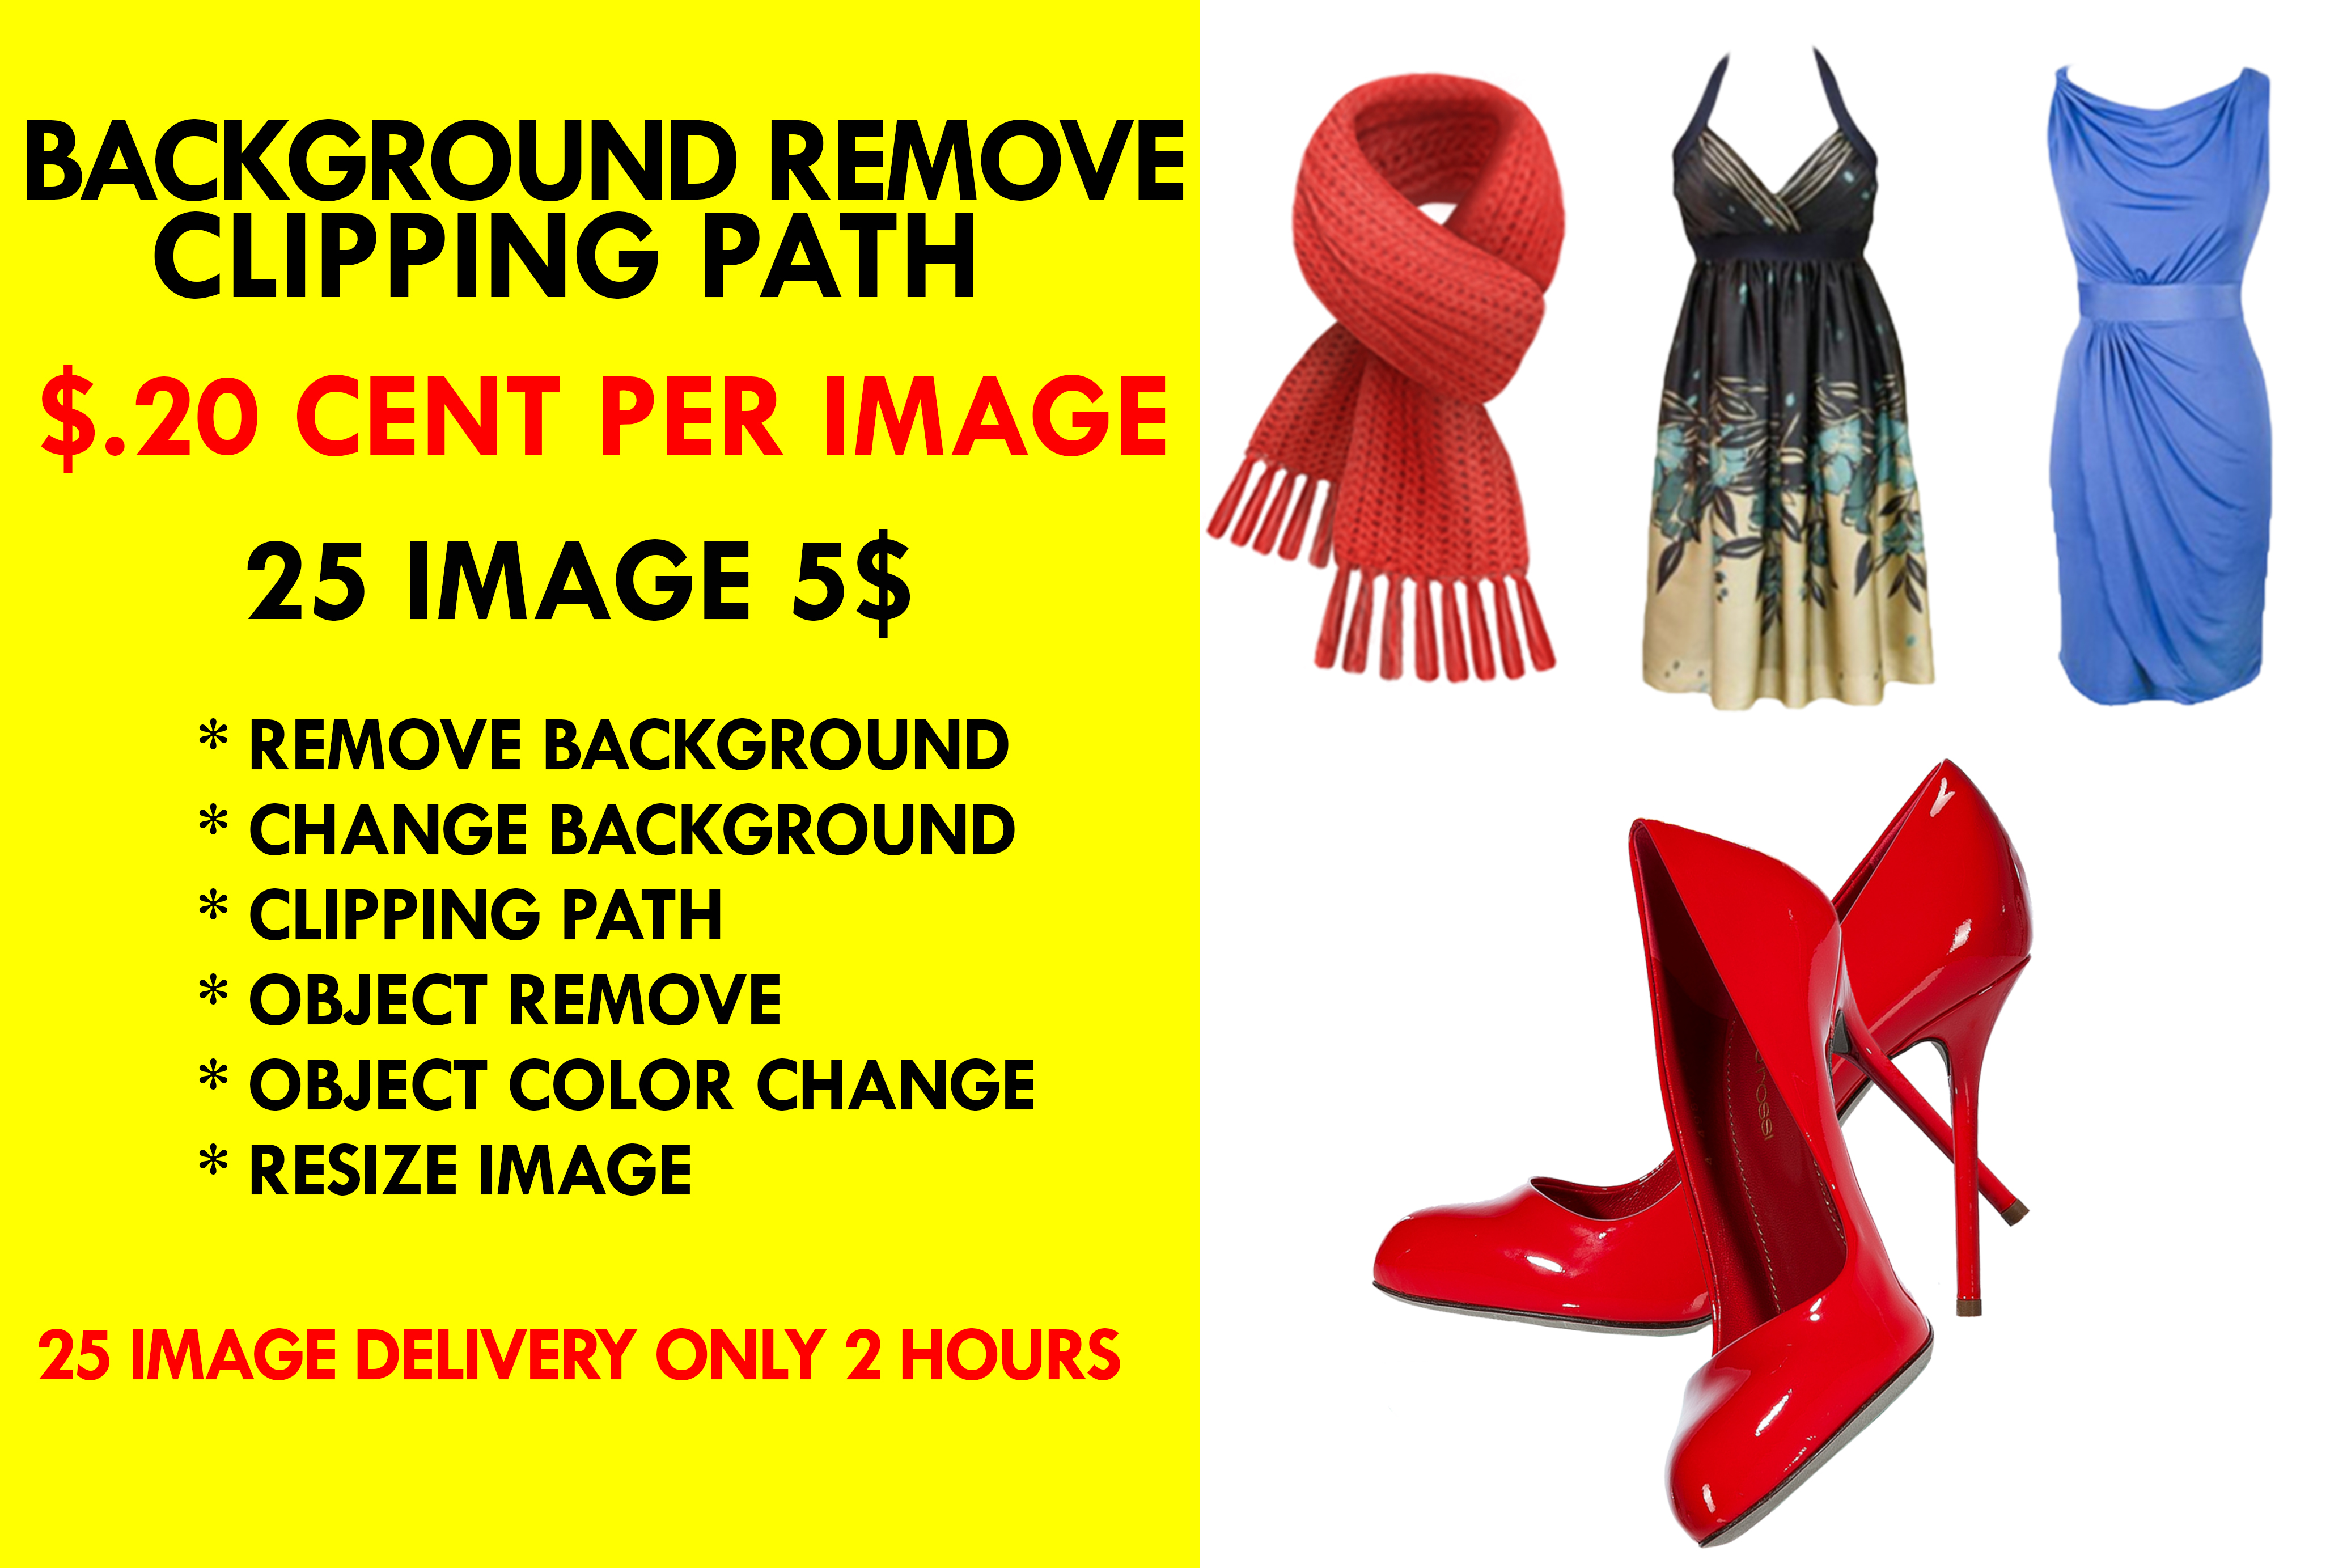 25 photo background remove by clipping path in 24 hours